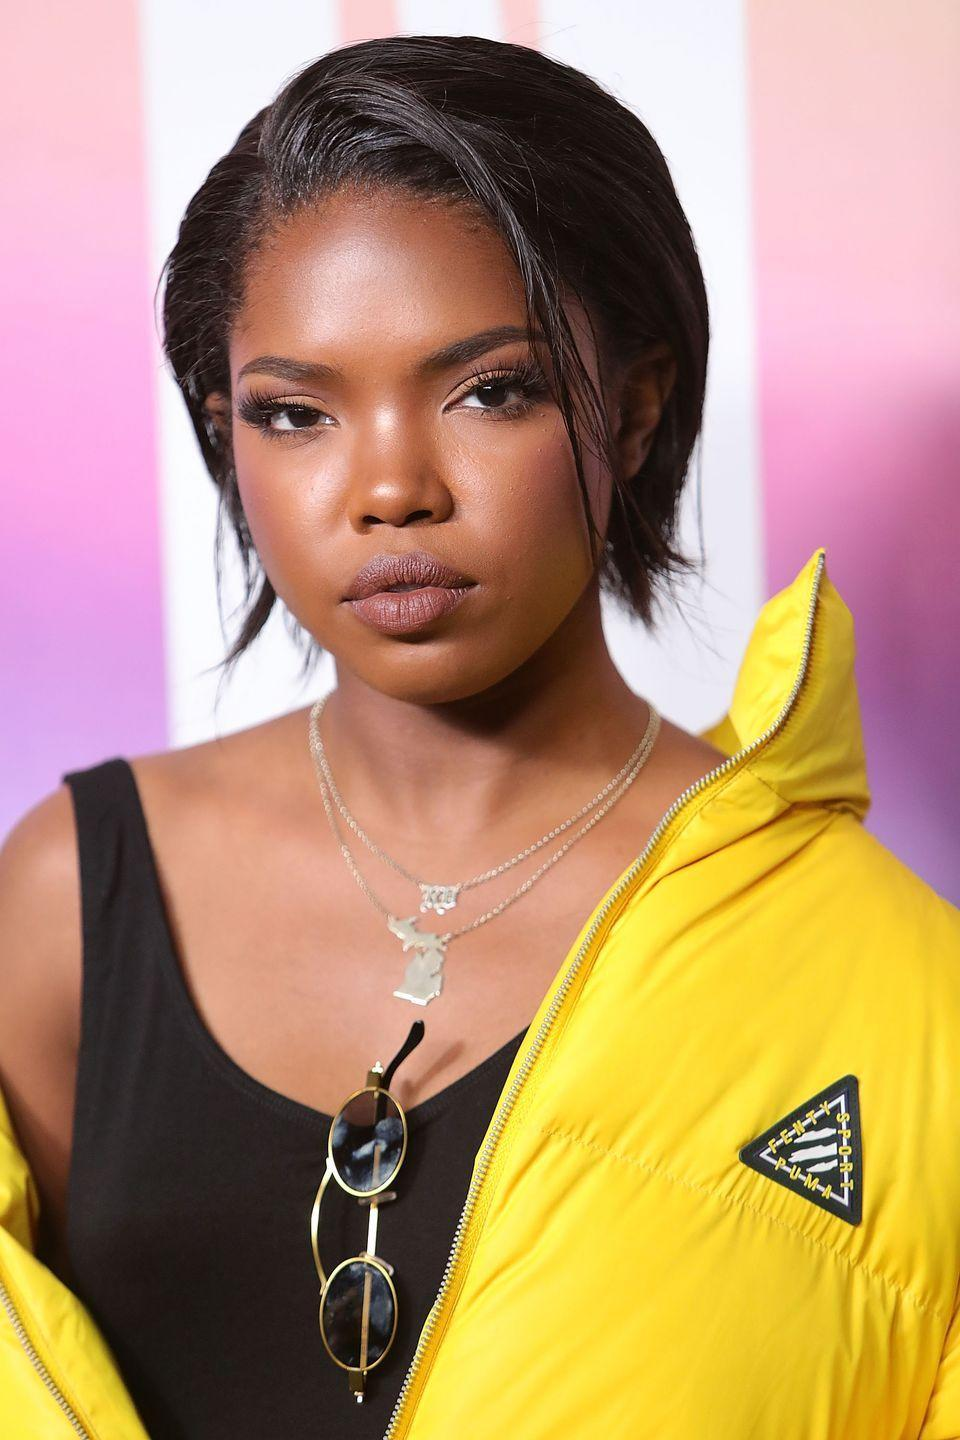 <p>Ryan Destiny goes for a structured yet wispy cut with this textured bob. Keep the feel of your hair effortless by tucking the sides and letting a a piece or two fall free towards the front. </p>